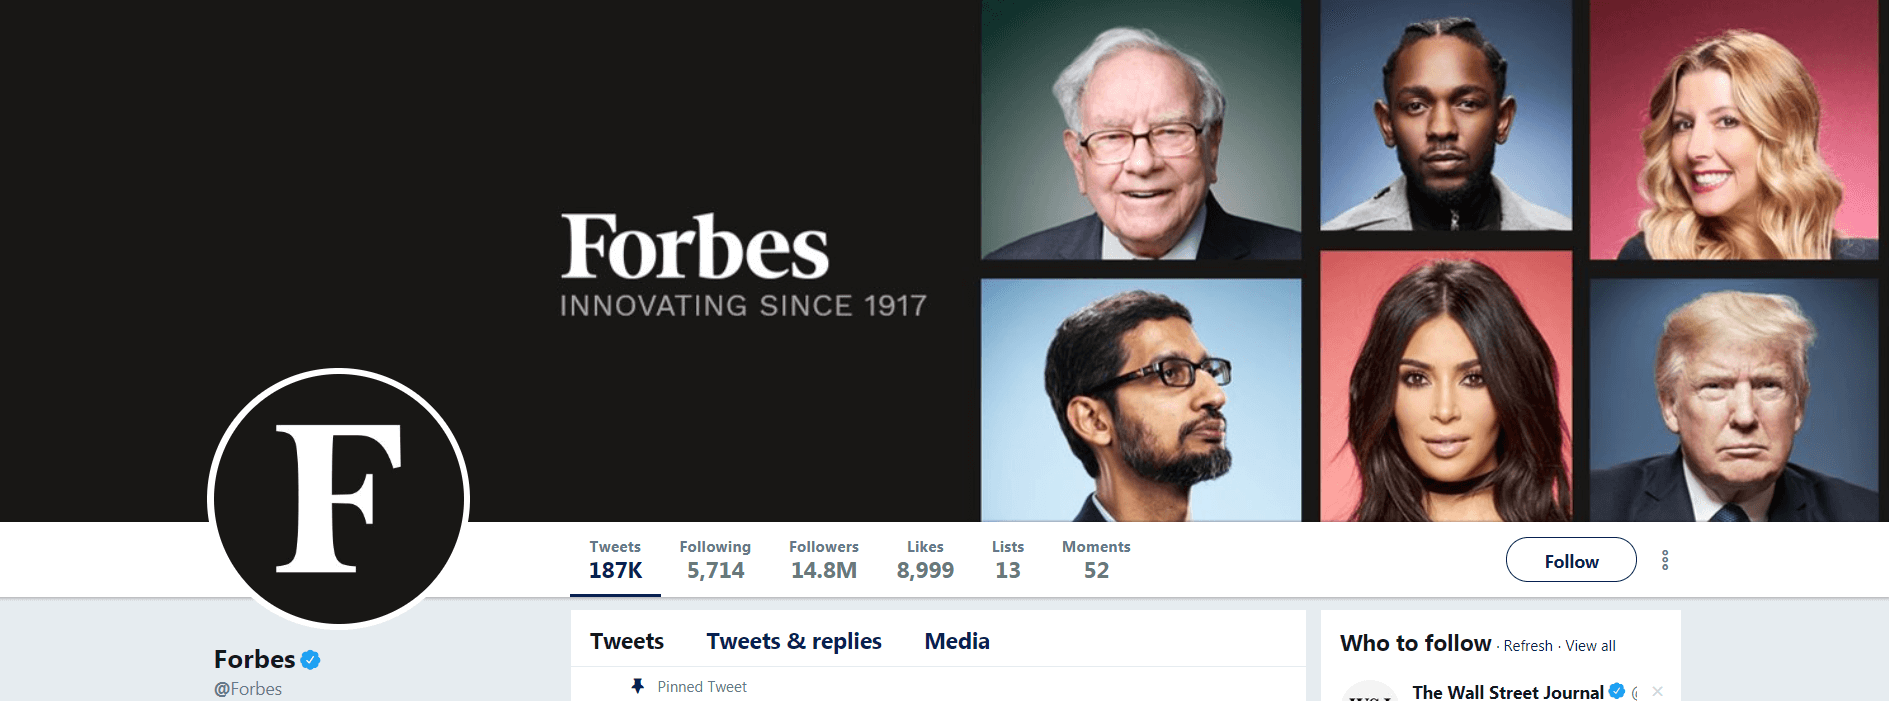 The Forbes Twitter business account header.